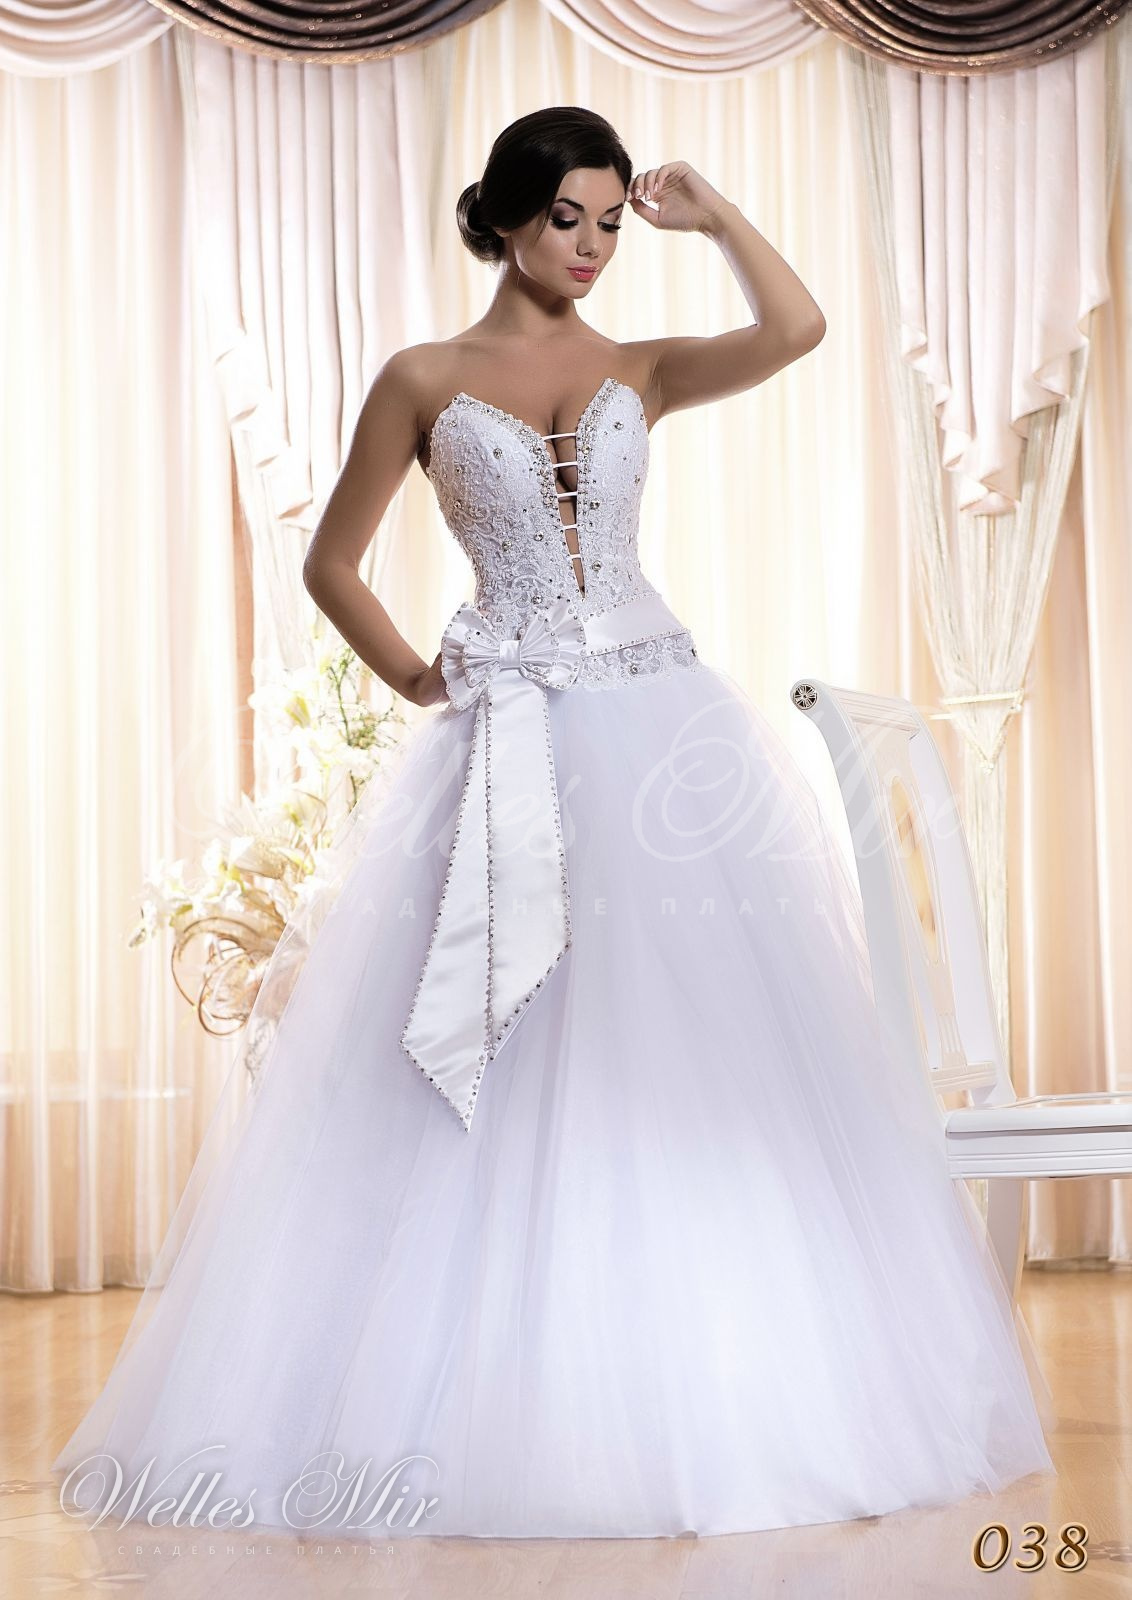 Wedding dresses 038